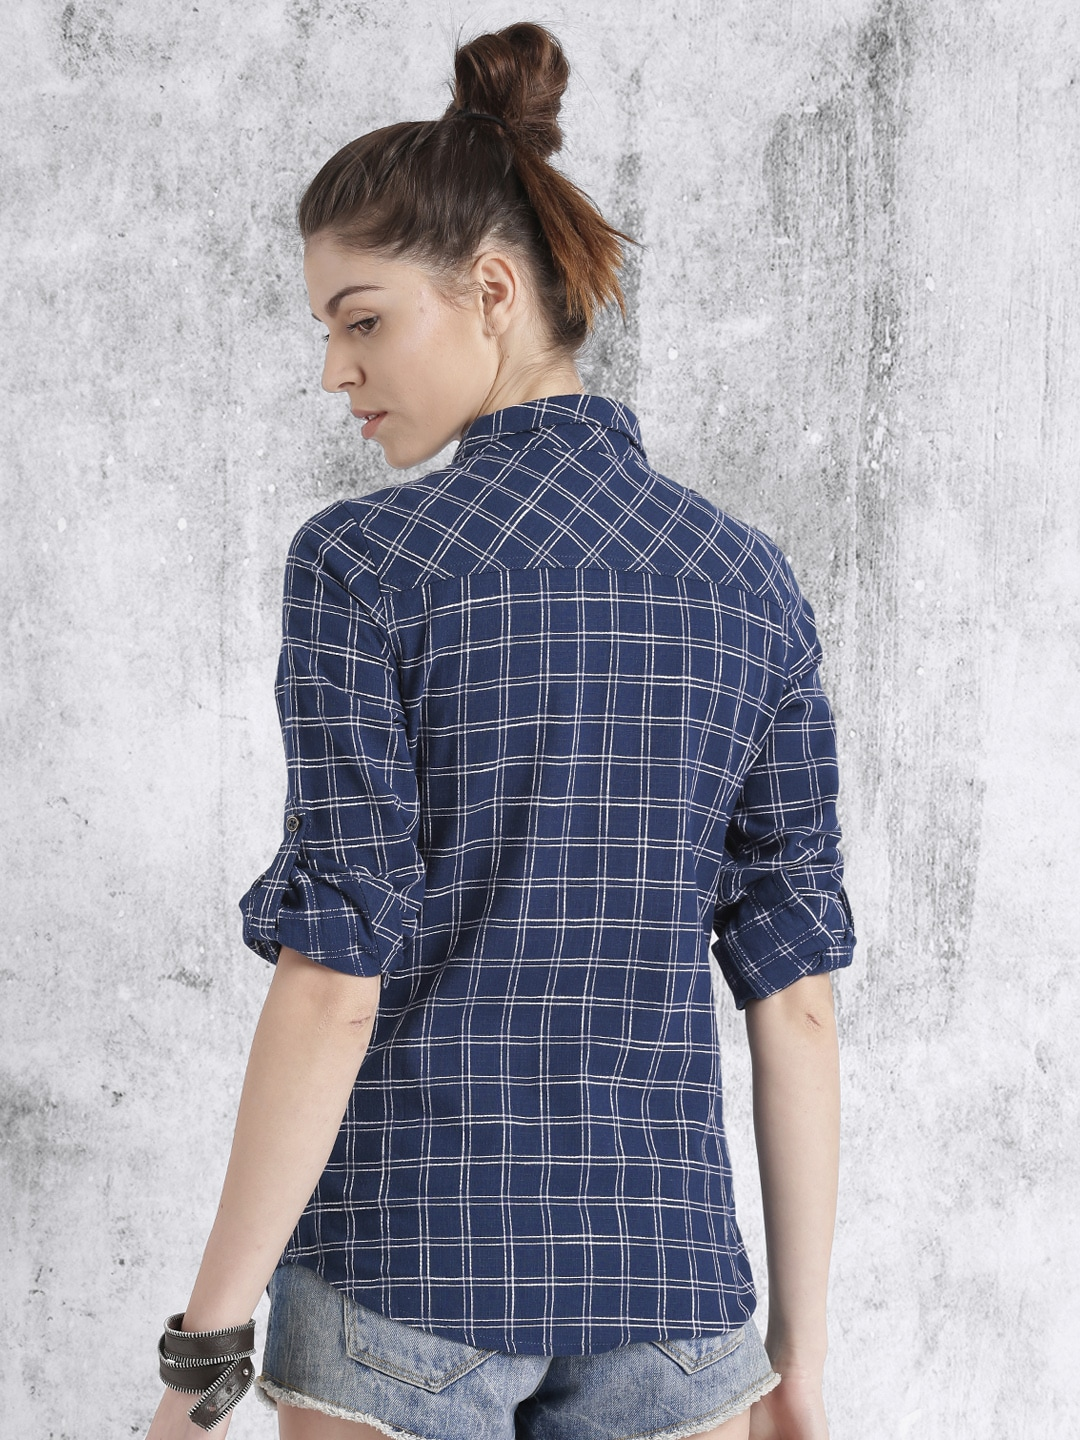 Shirts for Women - Buy Women's Shirts Online | Myntra